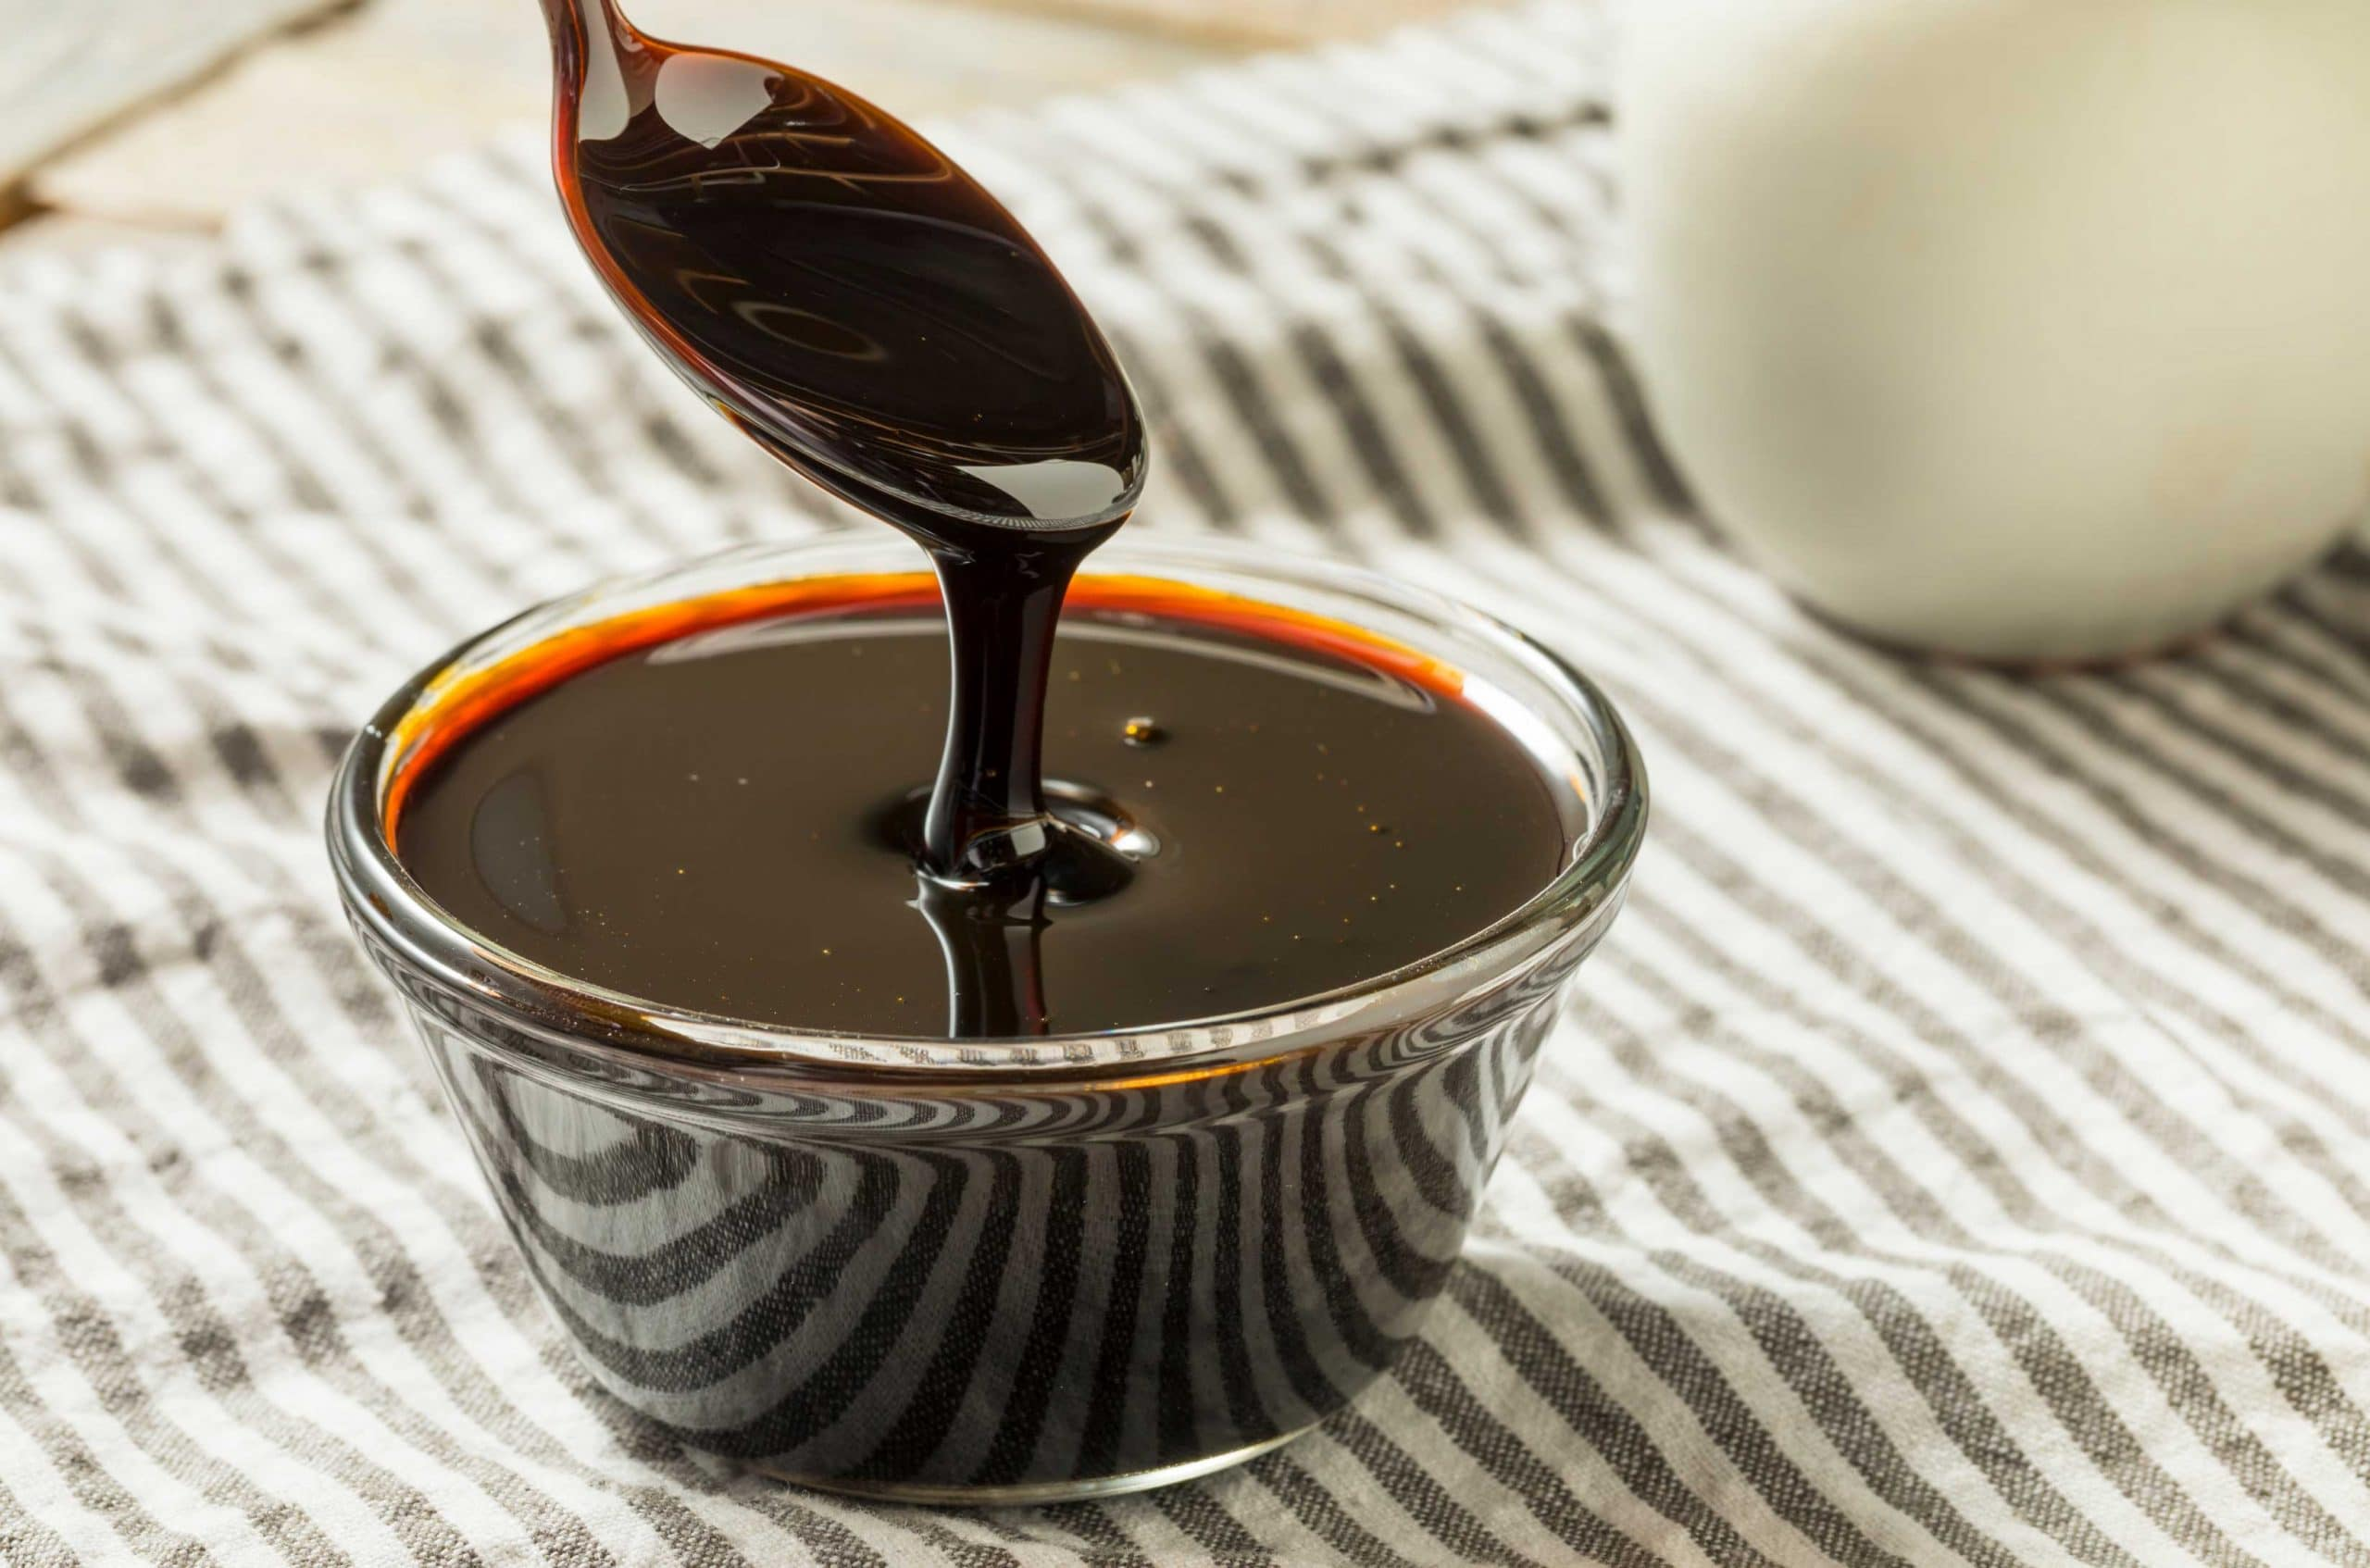 On a gray and white striped tablecloth sits a small glass bowl full of black strap molasses with a spoon that has just been dipped in the syrup and raised out of the bowl.